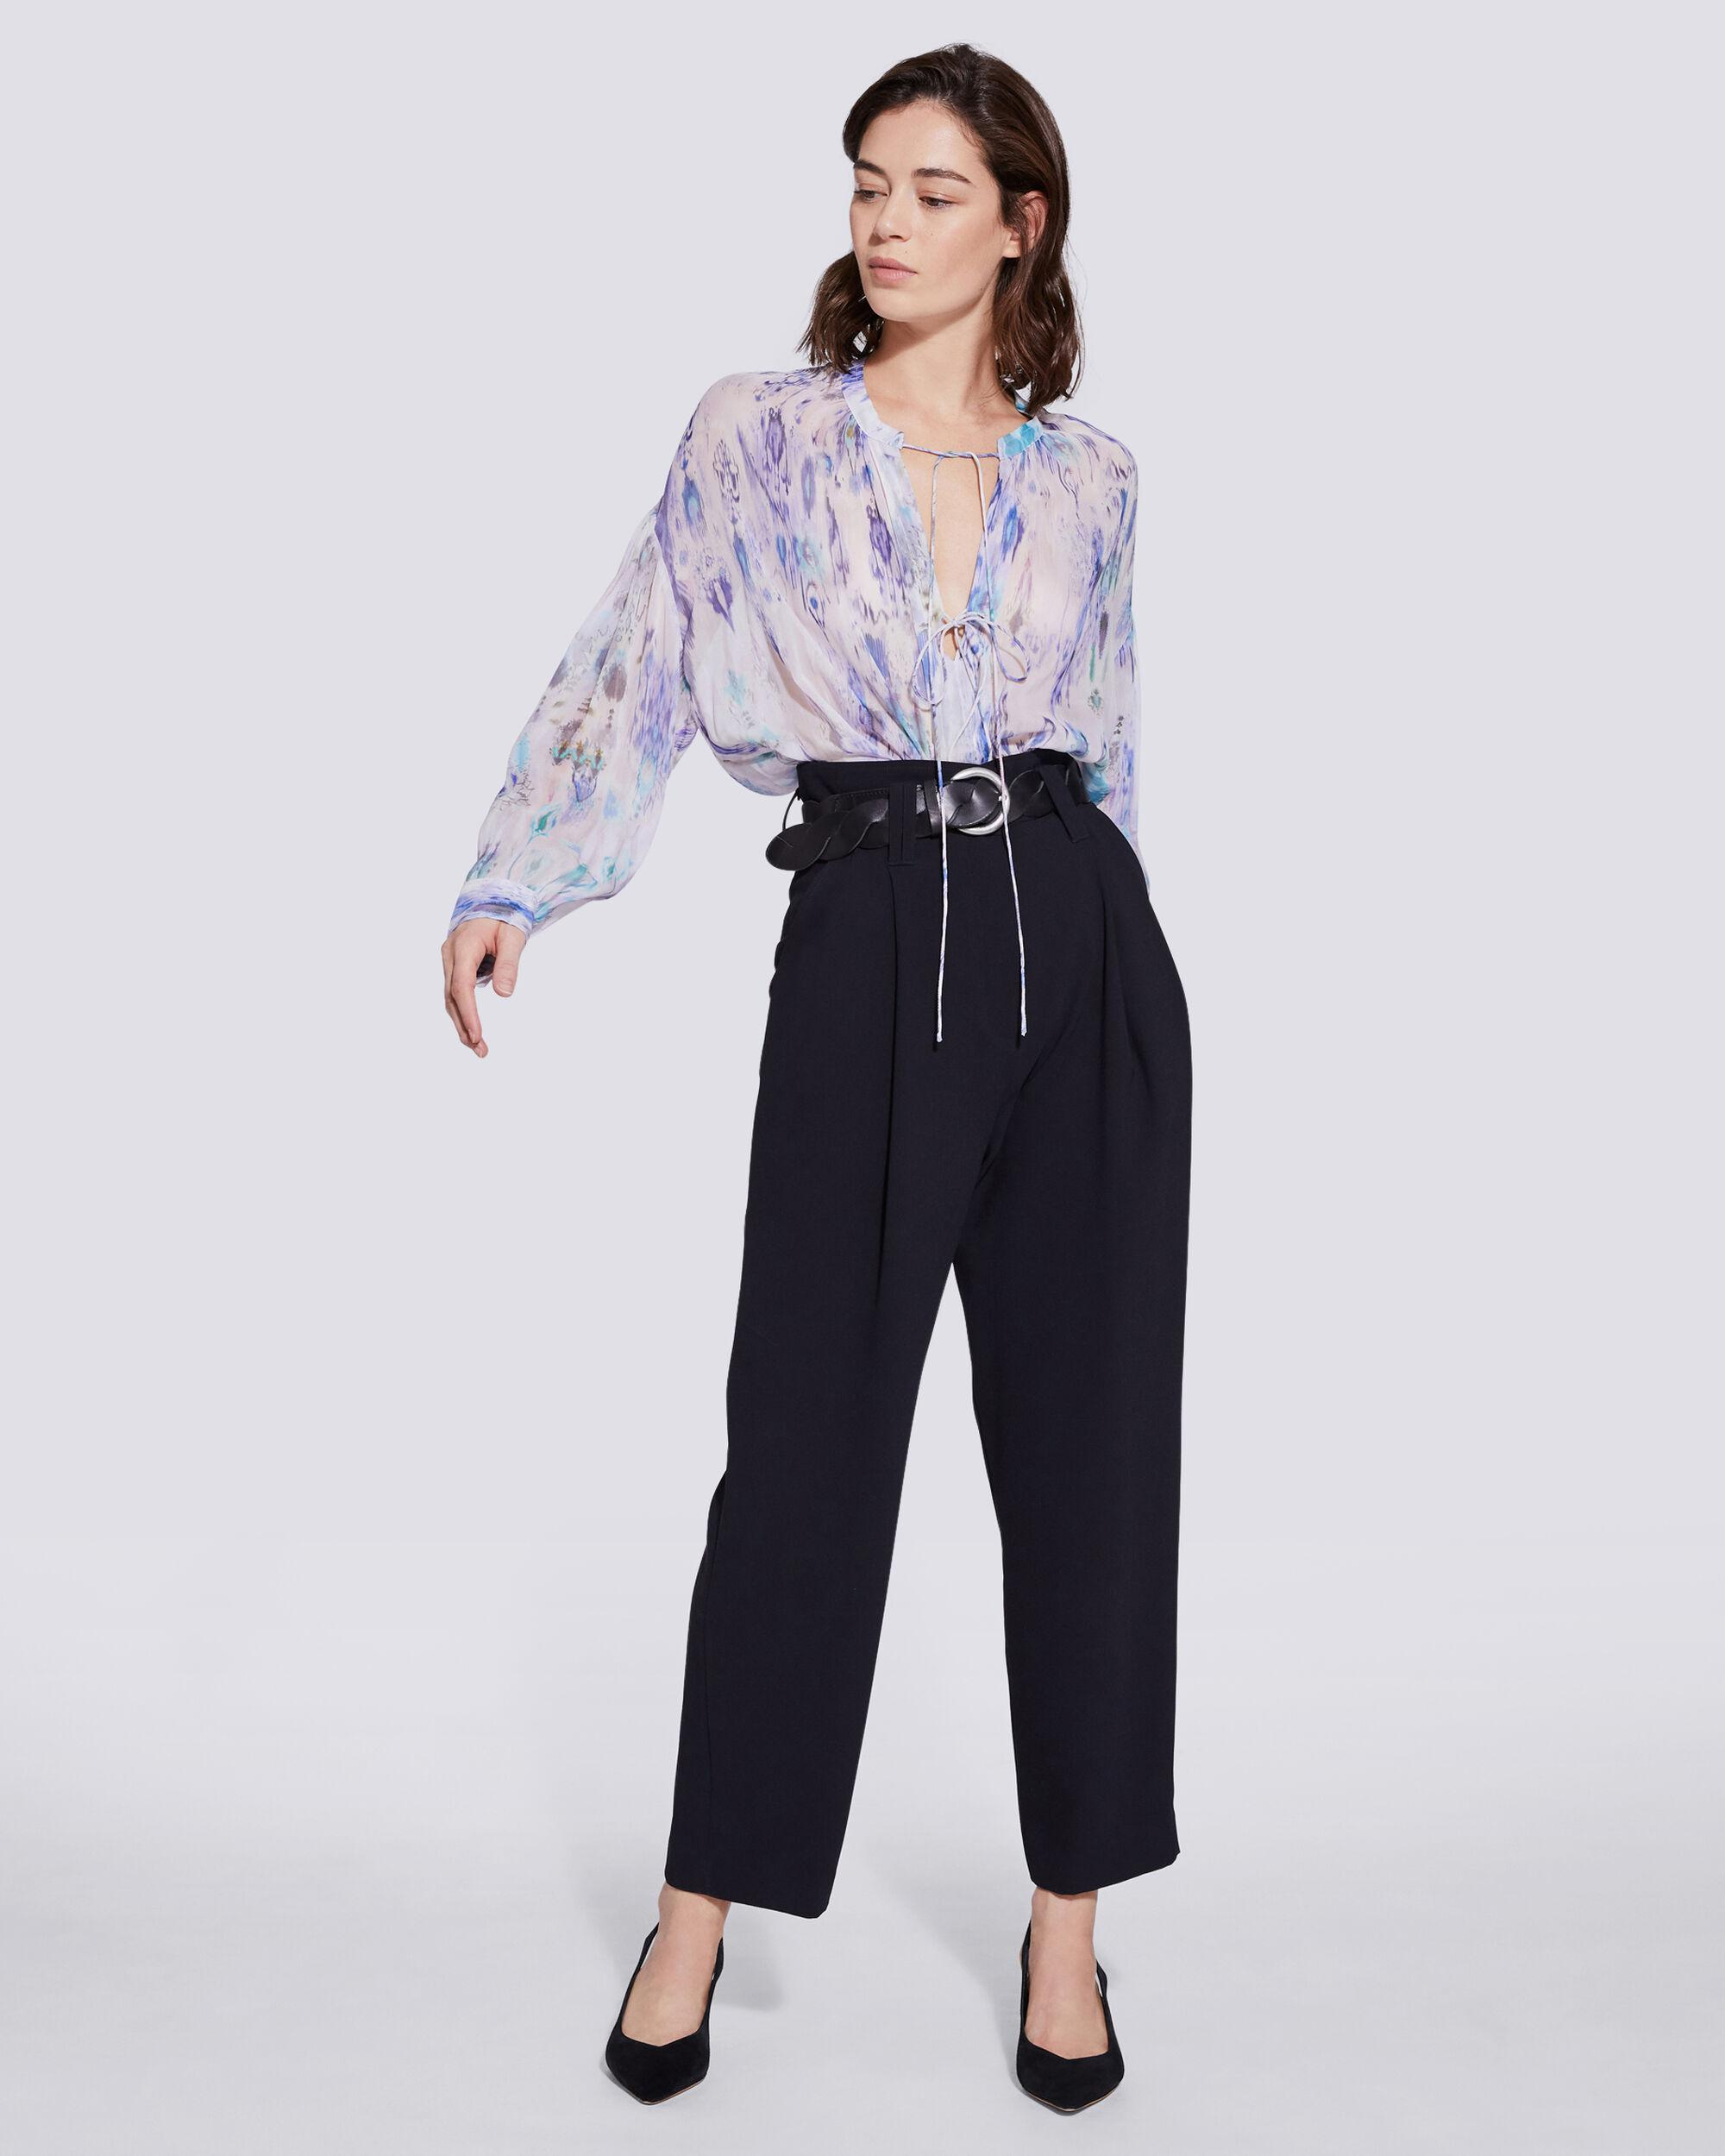 LADE TIE FRONT SHEER PRINTED BLOUSE